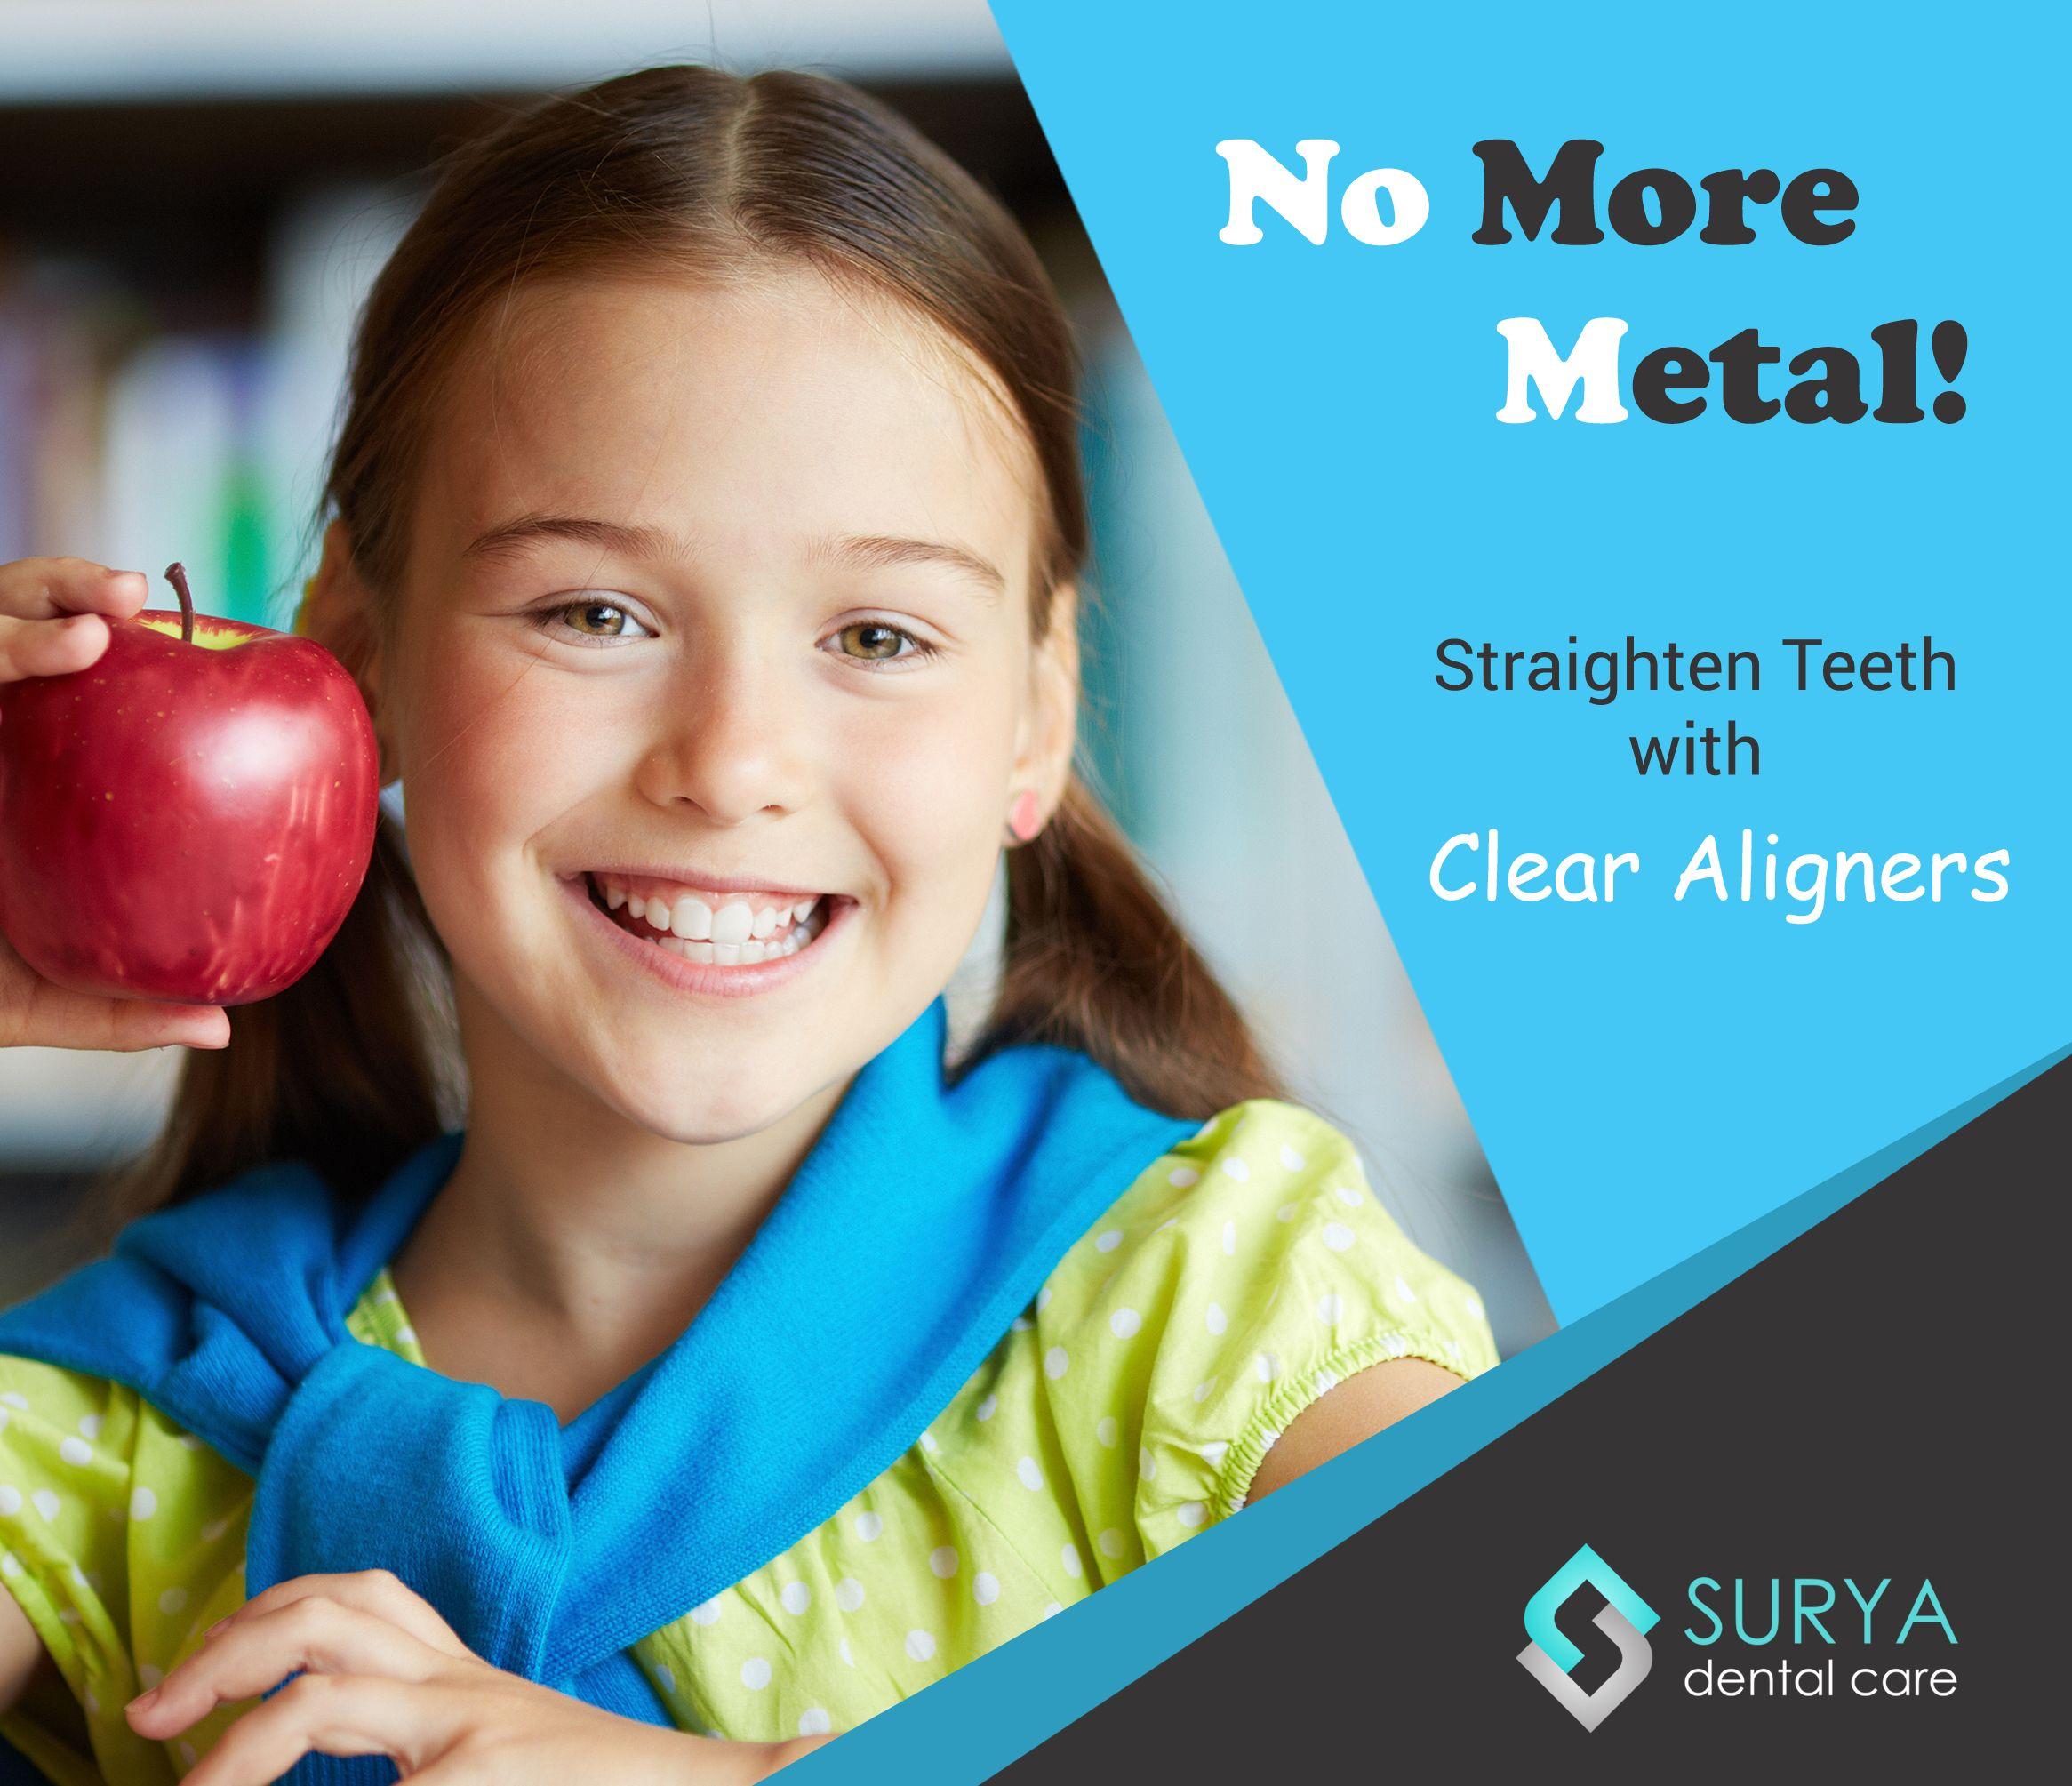 Embarrassing to wear traditional metallic braces without